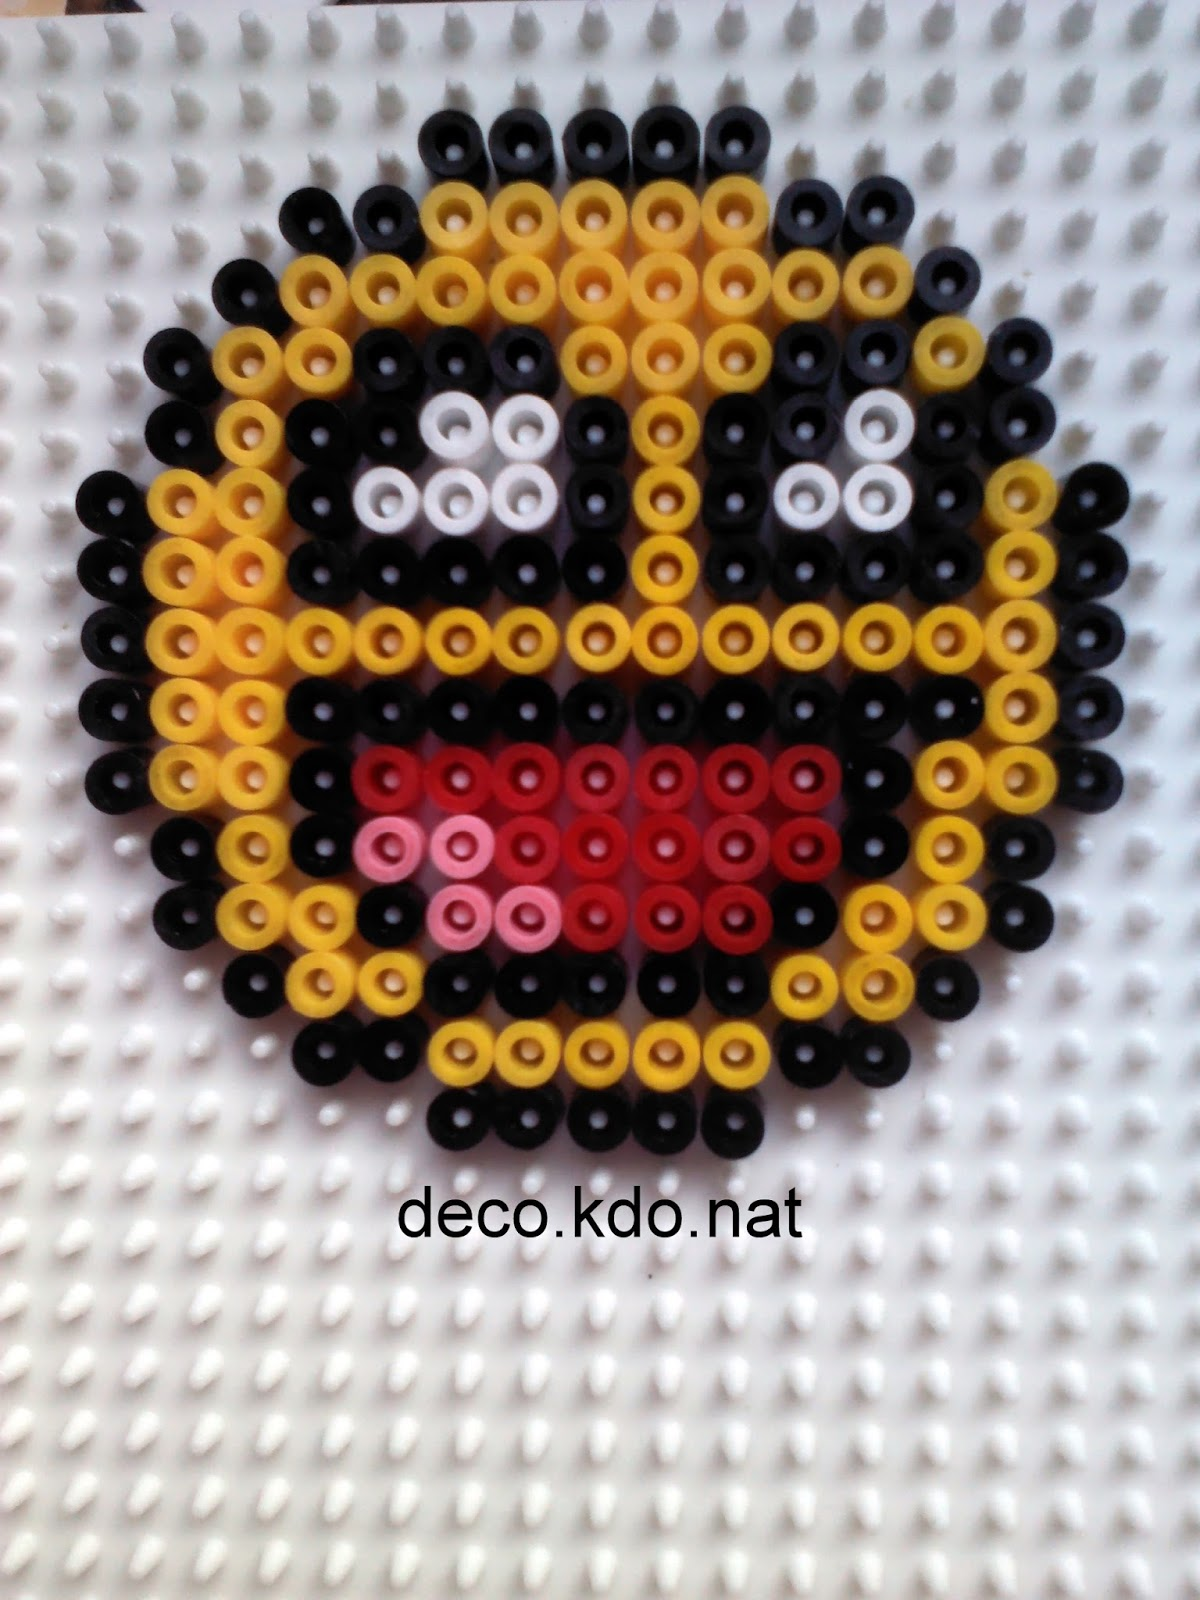 deco kdo nat perles hama smileys. Black Bedroom Furniture Sets. Home Design Ideas